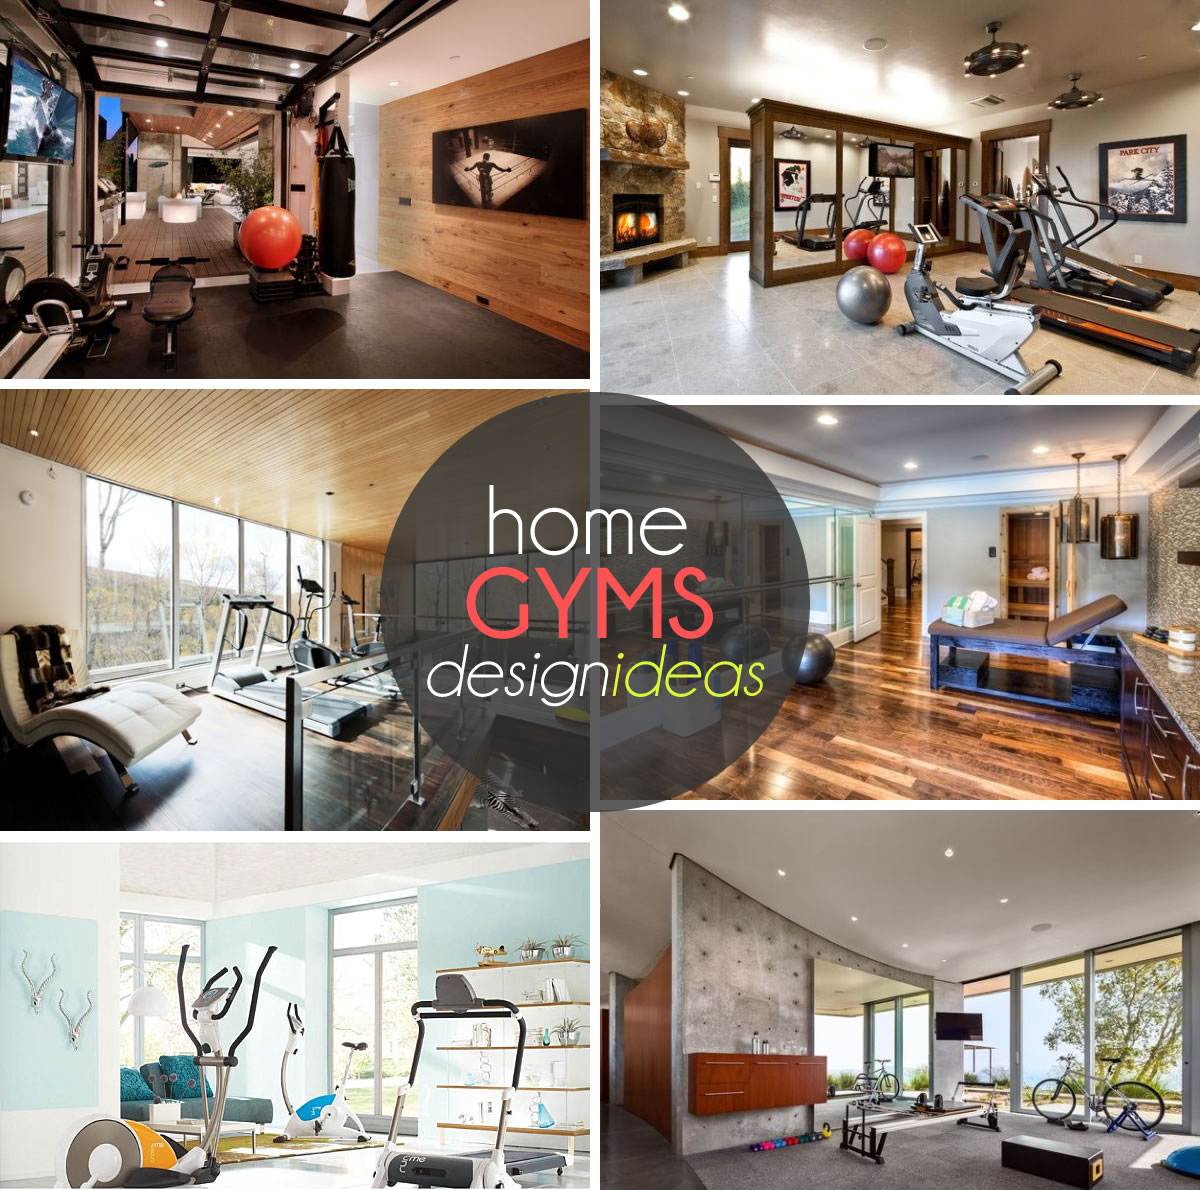 70 home gym ideas and gym rooms to empower your workouts Home ideas